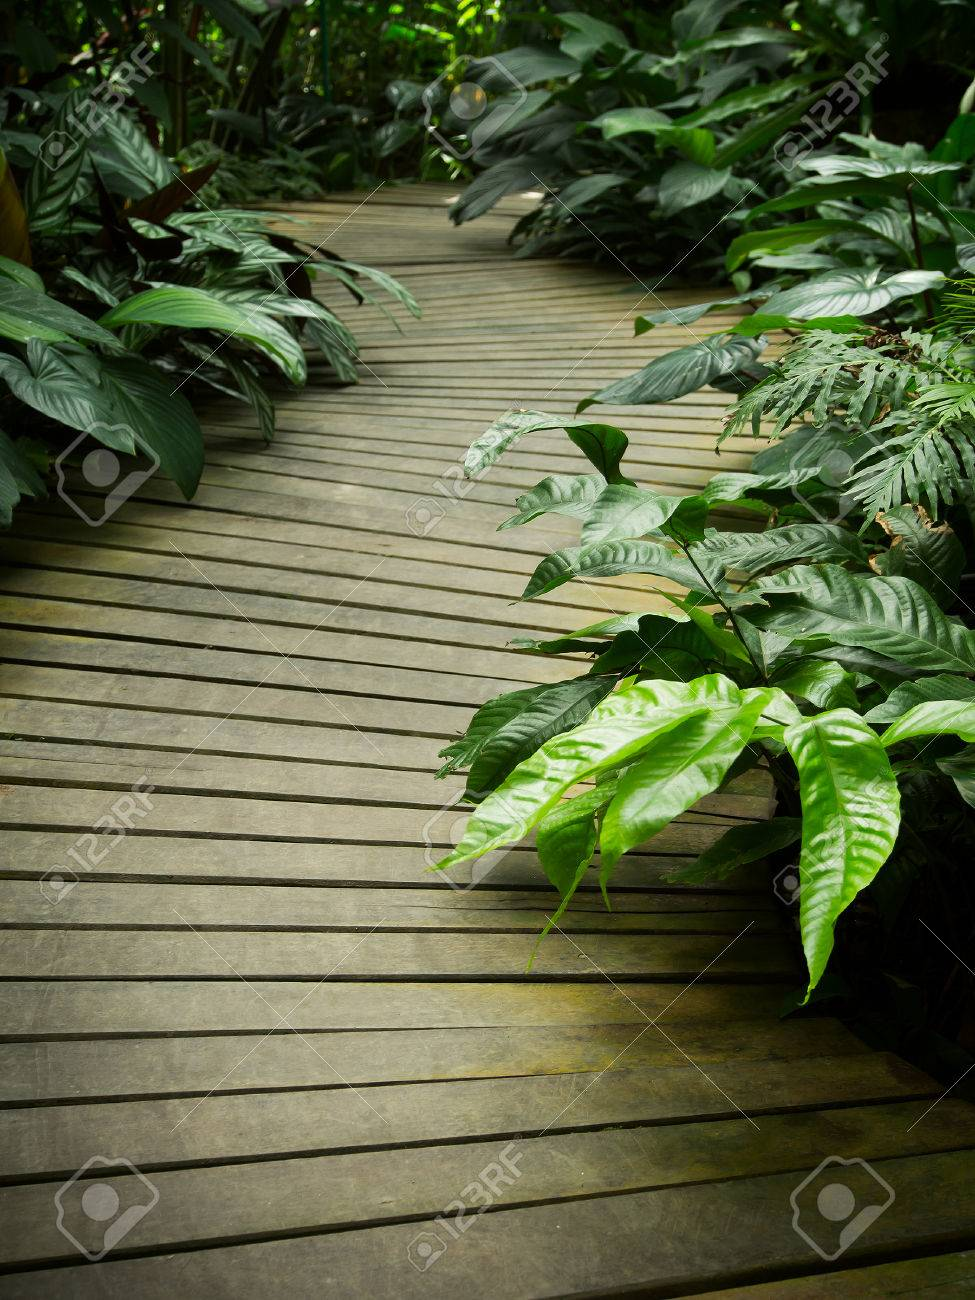 Stock Photo   Wood Path In Tropical Garden